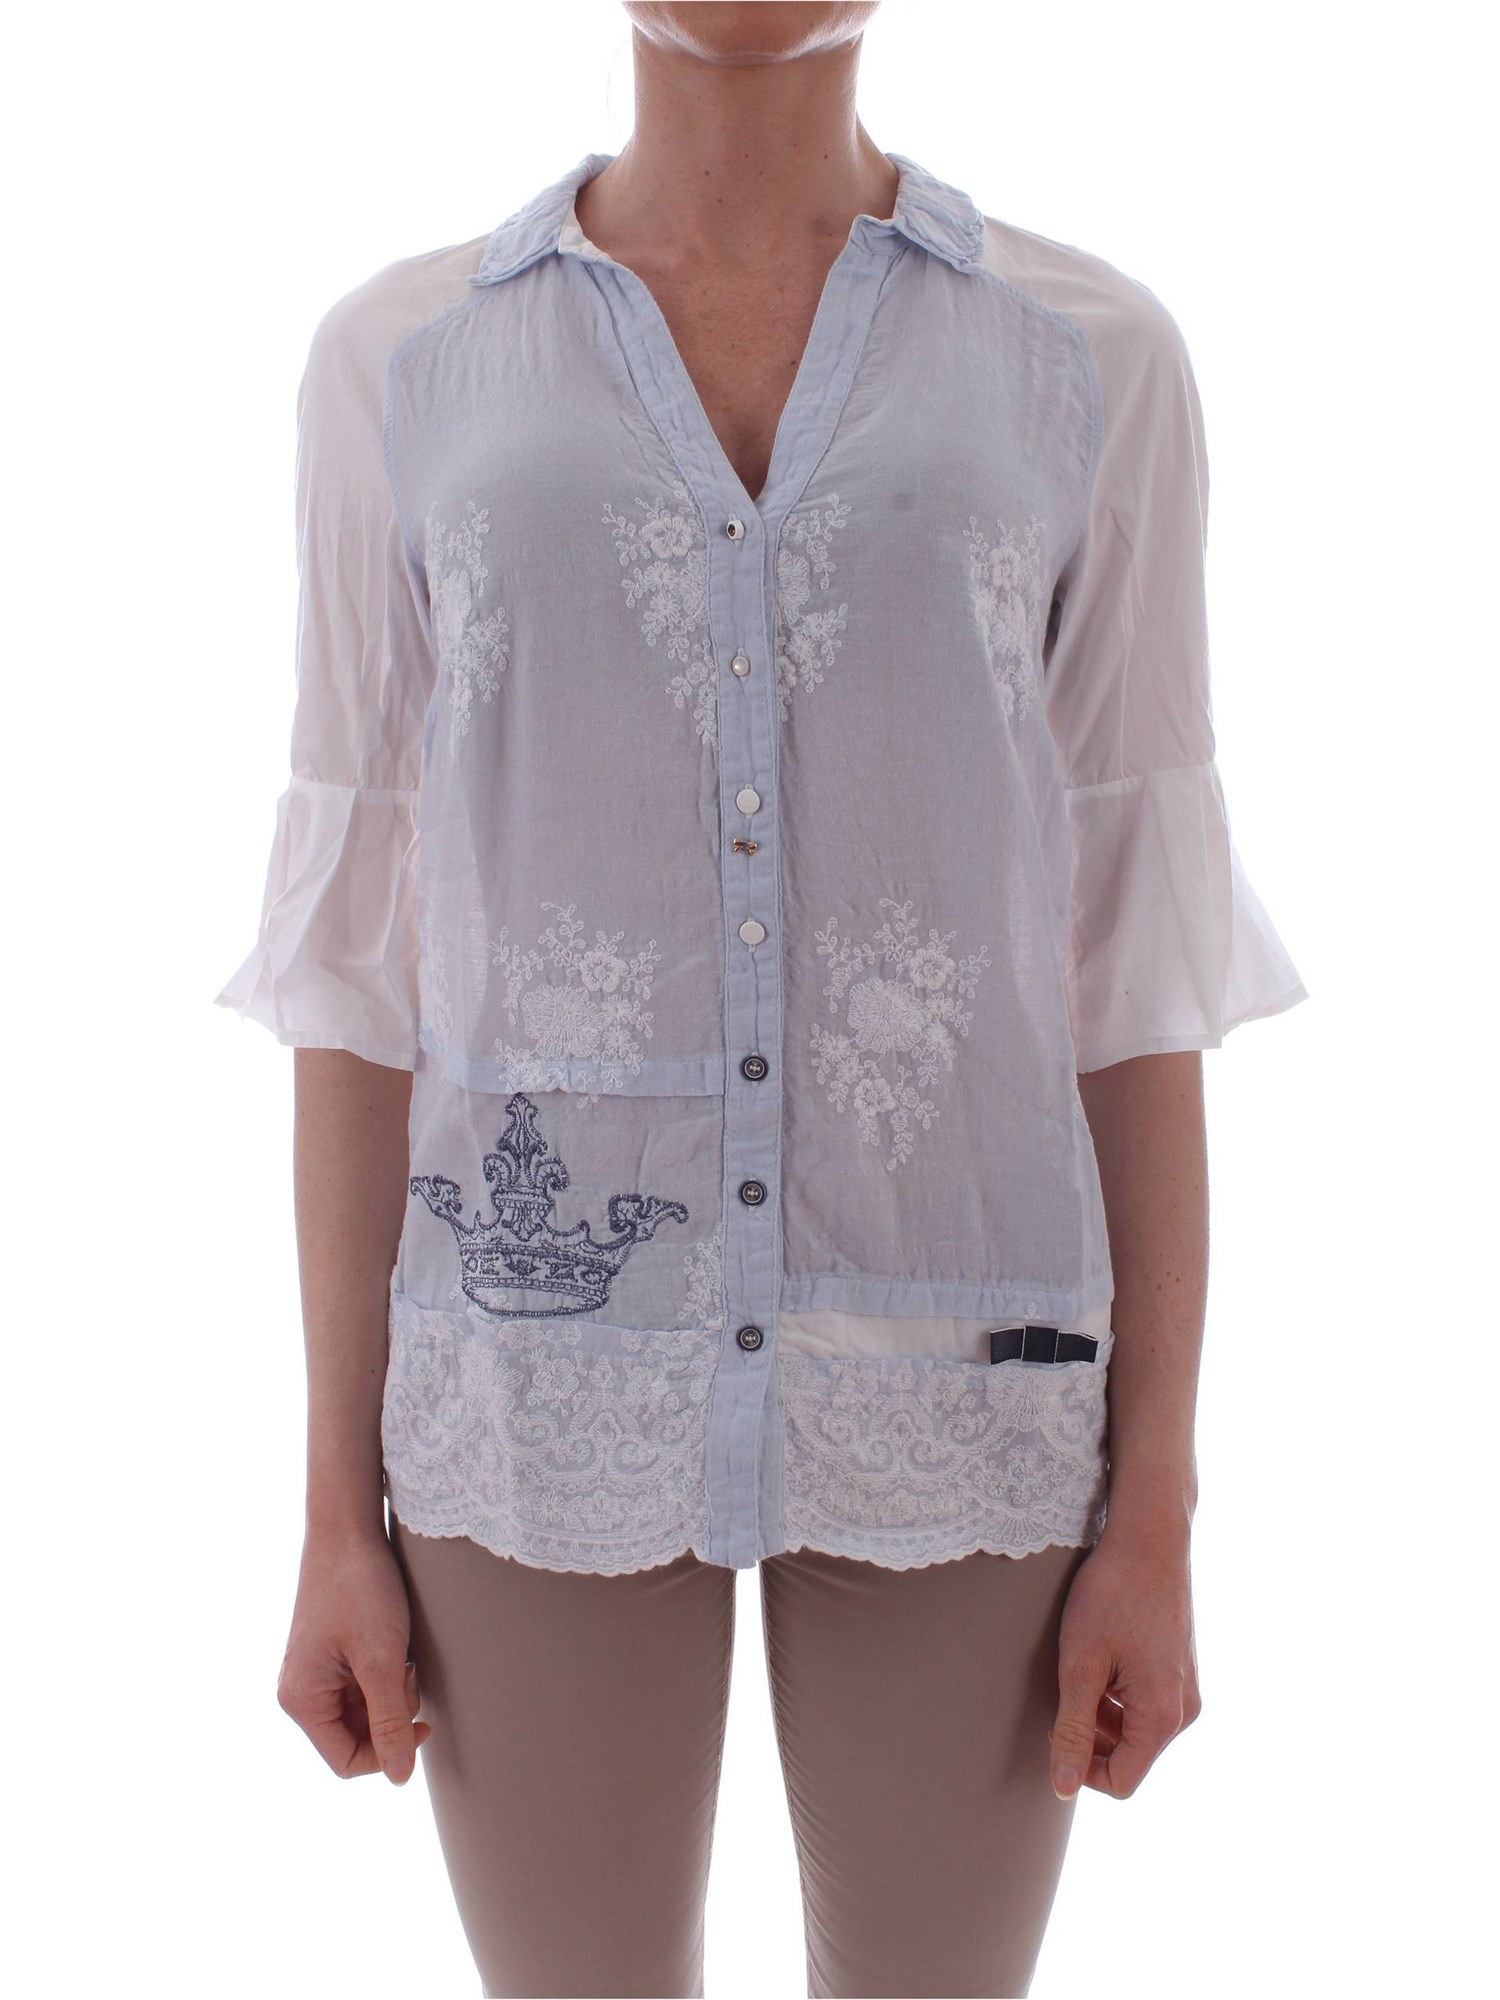 26728f3b729 Blouse Elisa Cavaletti Woman - White - Buy Blouse On line on Gruppo ...